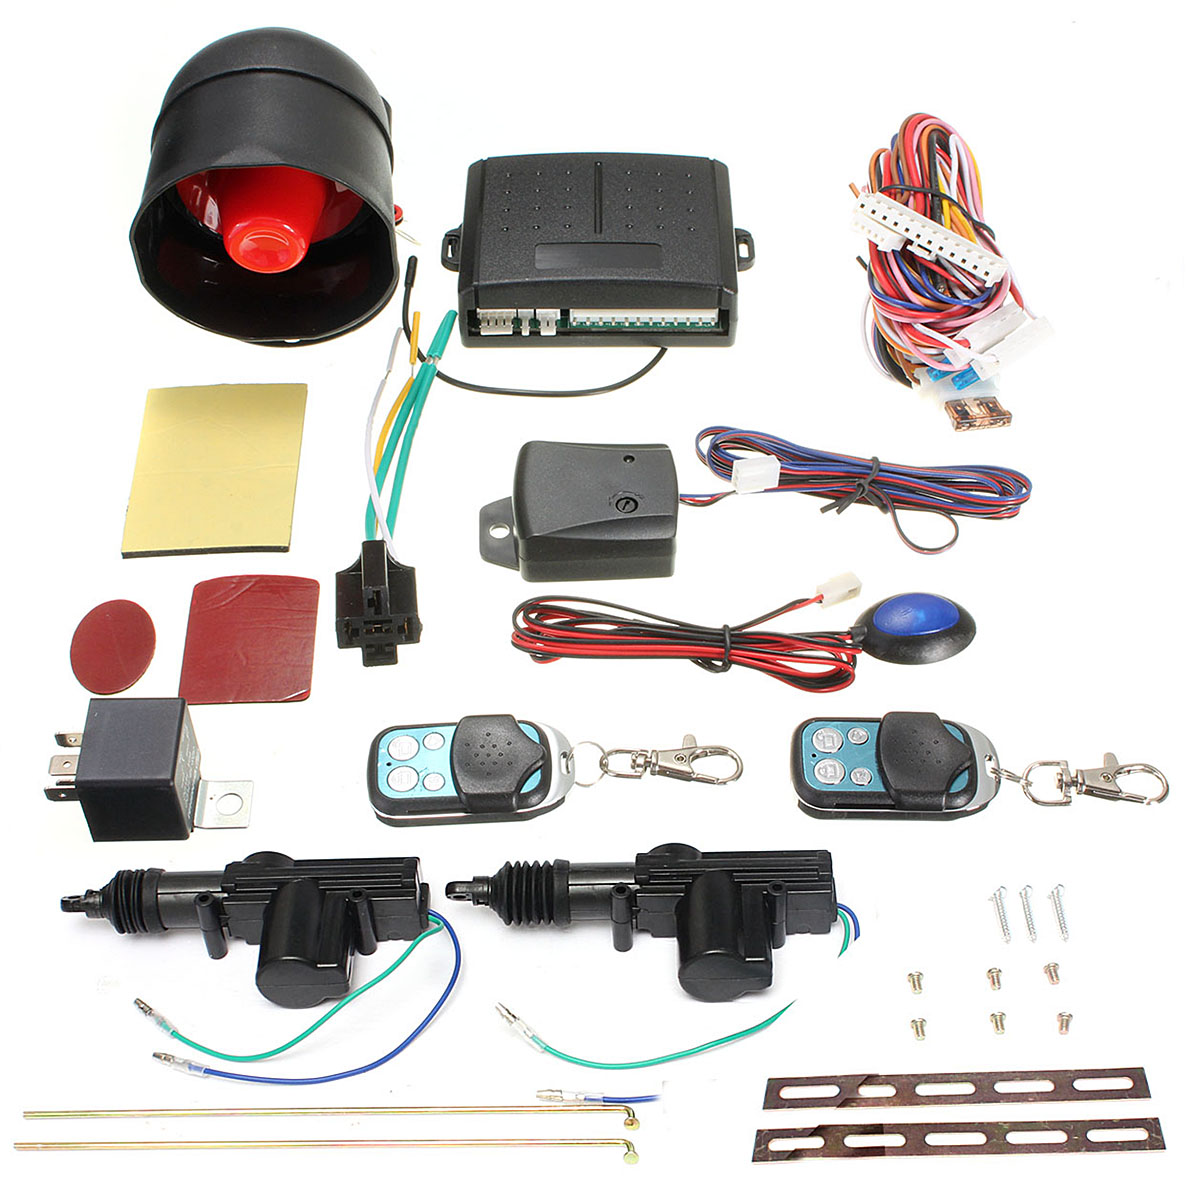 Door-Lock Set-Of-Alarm-Systems Auto-Remote-Central-Kit Car with Vehicle